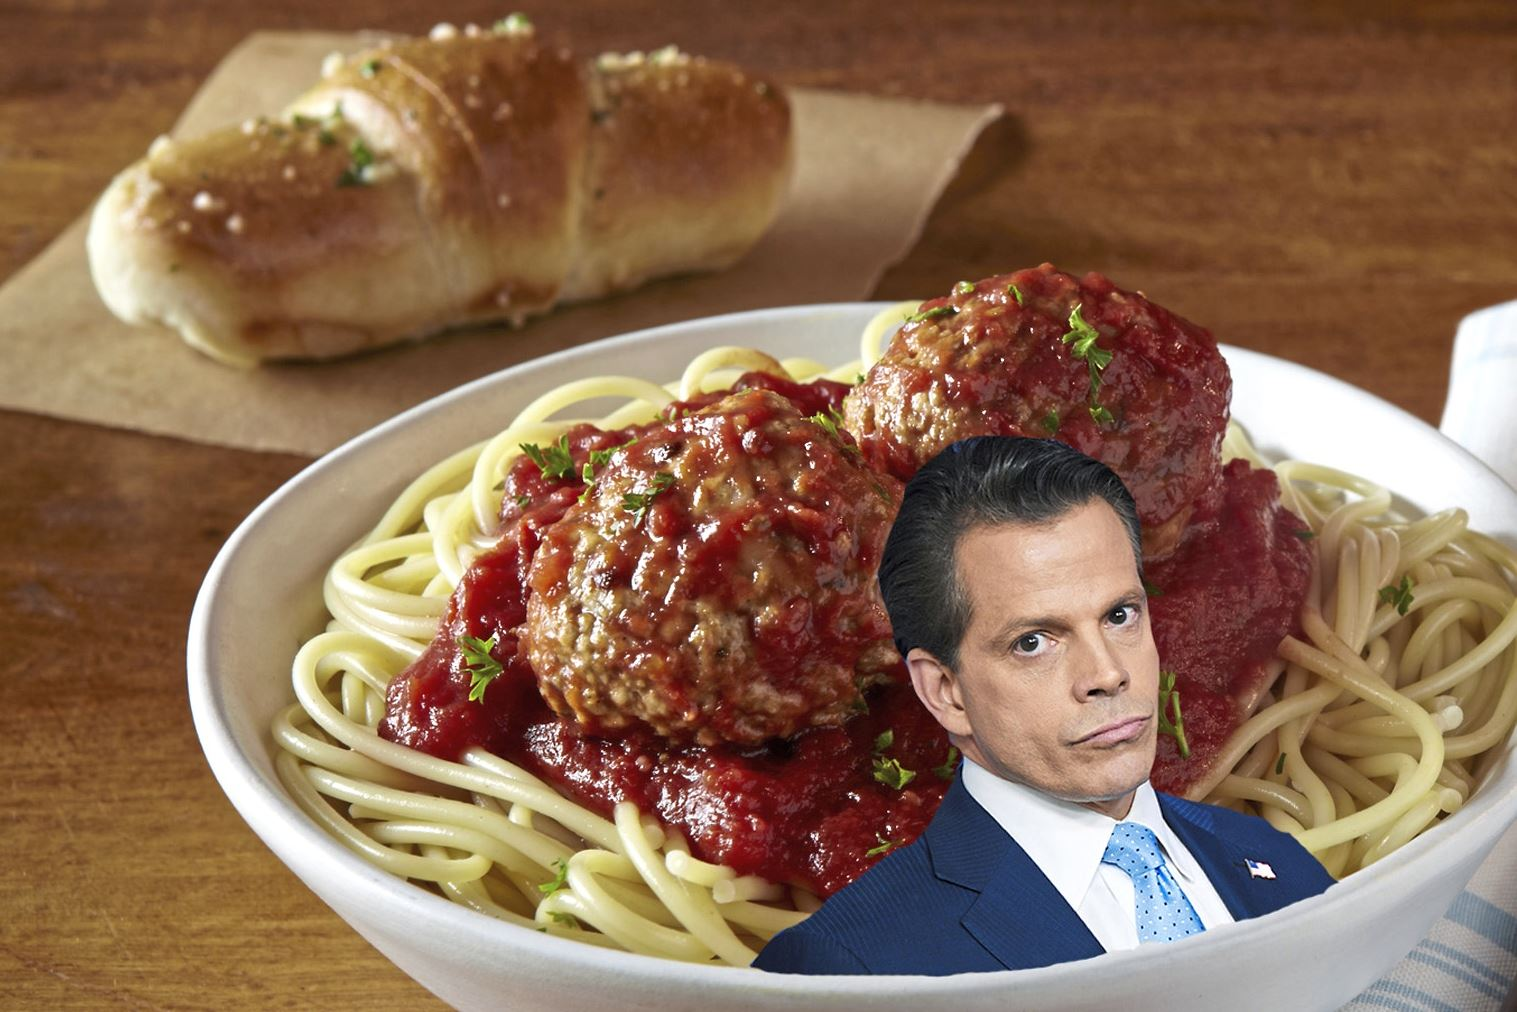 The Mooch Is Making A Comeback This Time In An Italian Meatball Meal Pittsburgh Post Gazette